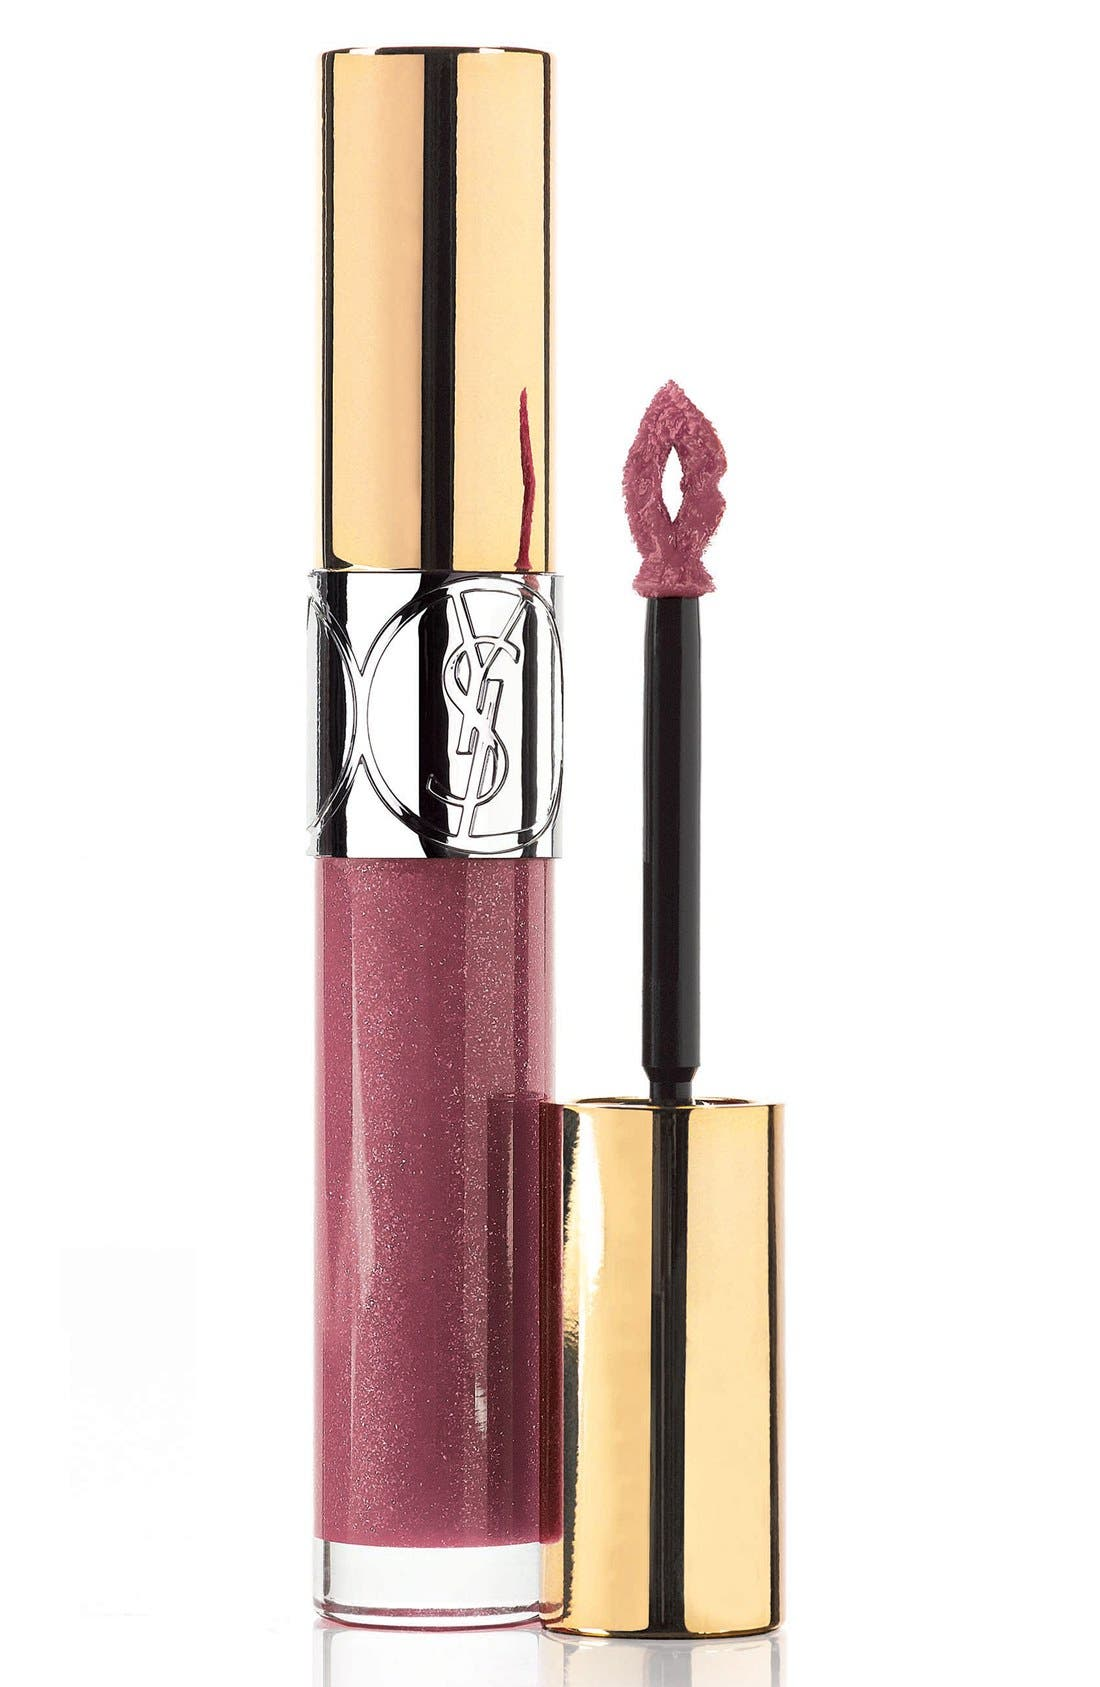 Yves Saint Laurent 'Savage Summer - Gloss Volupte' Lip Gloss